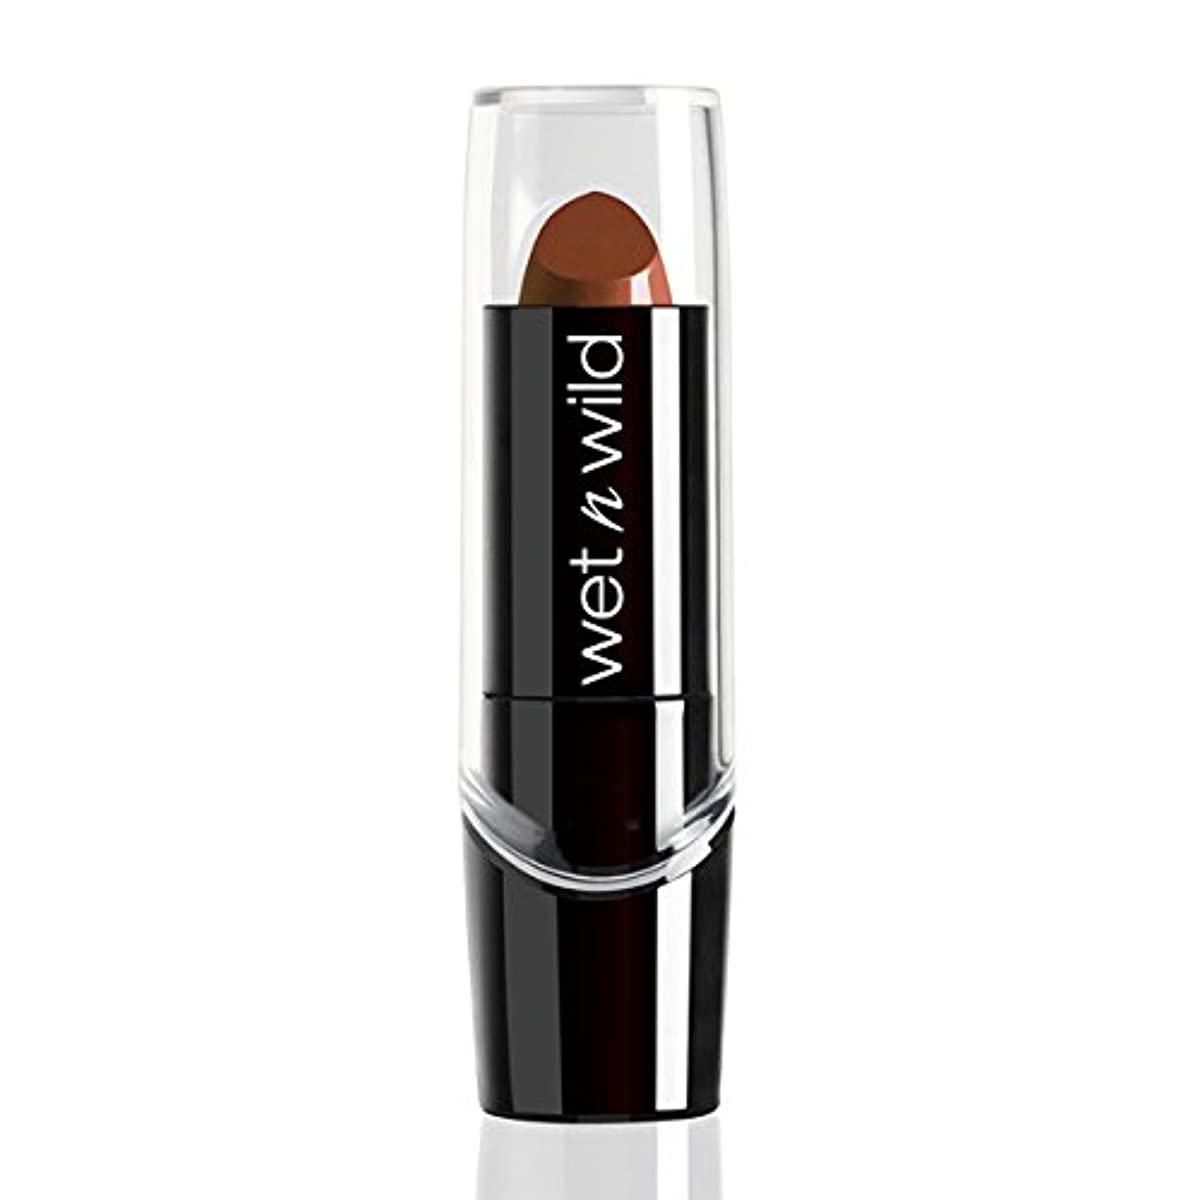 語マラソン和WET N WILD Silk Finish Lipstick - Mink Brown (並行輸入品)